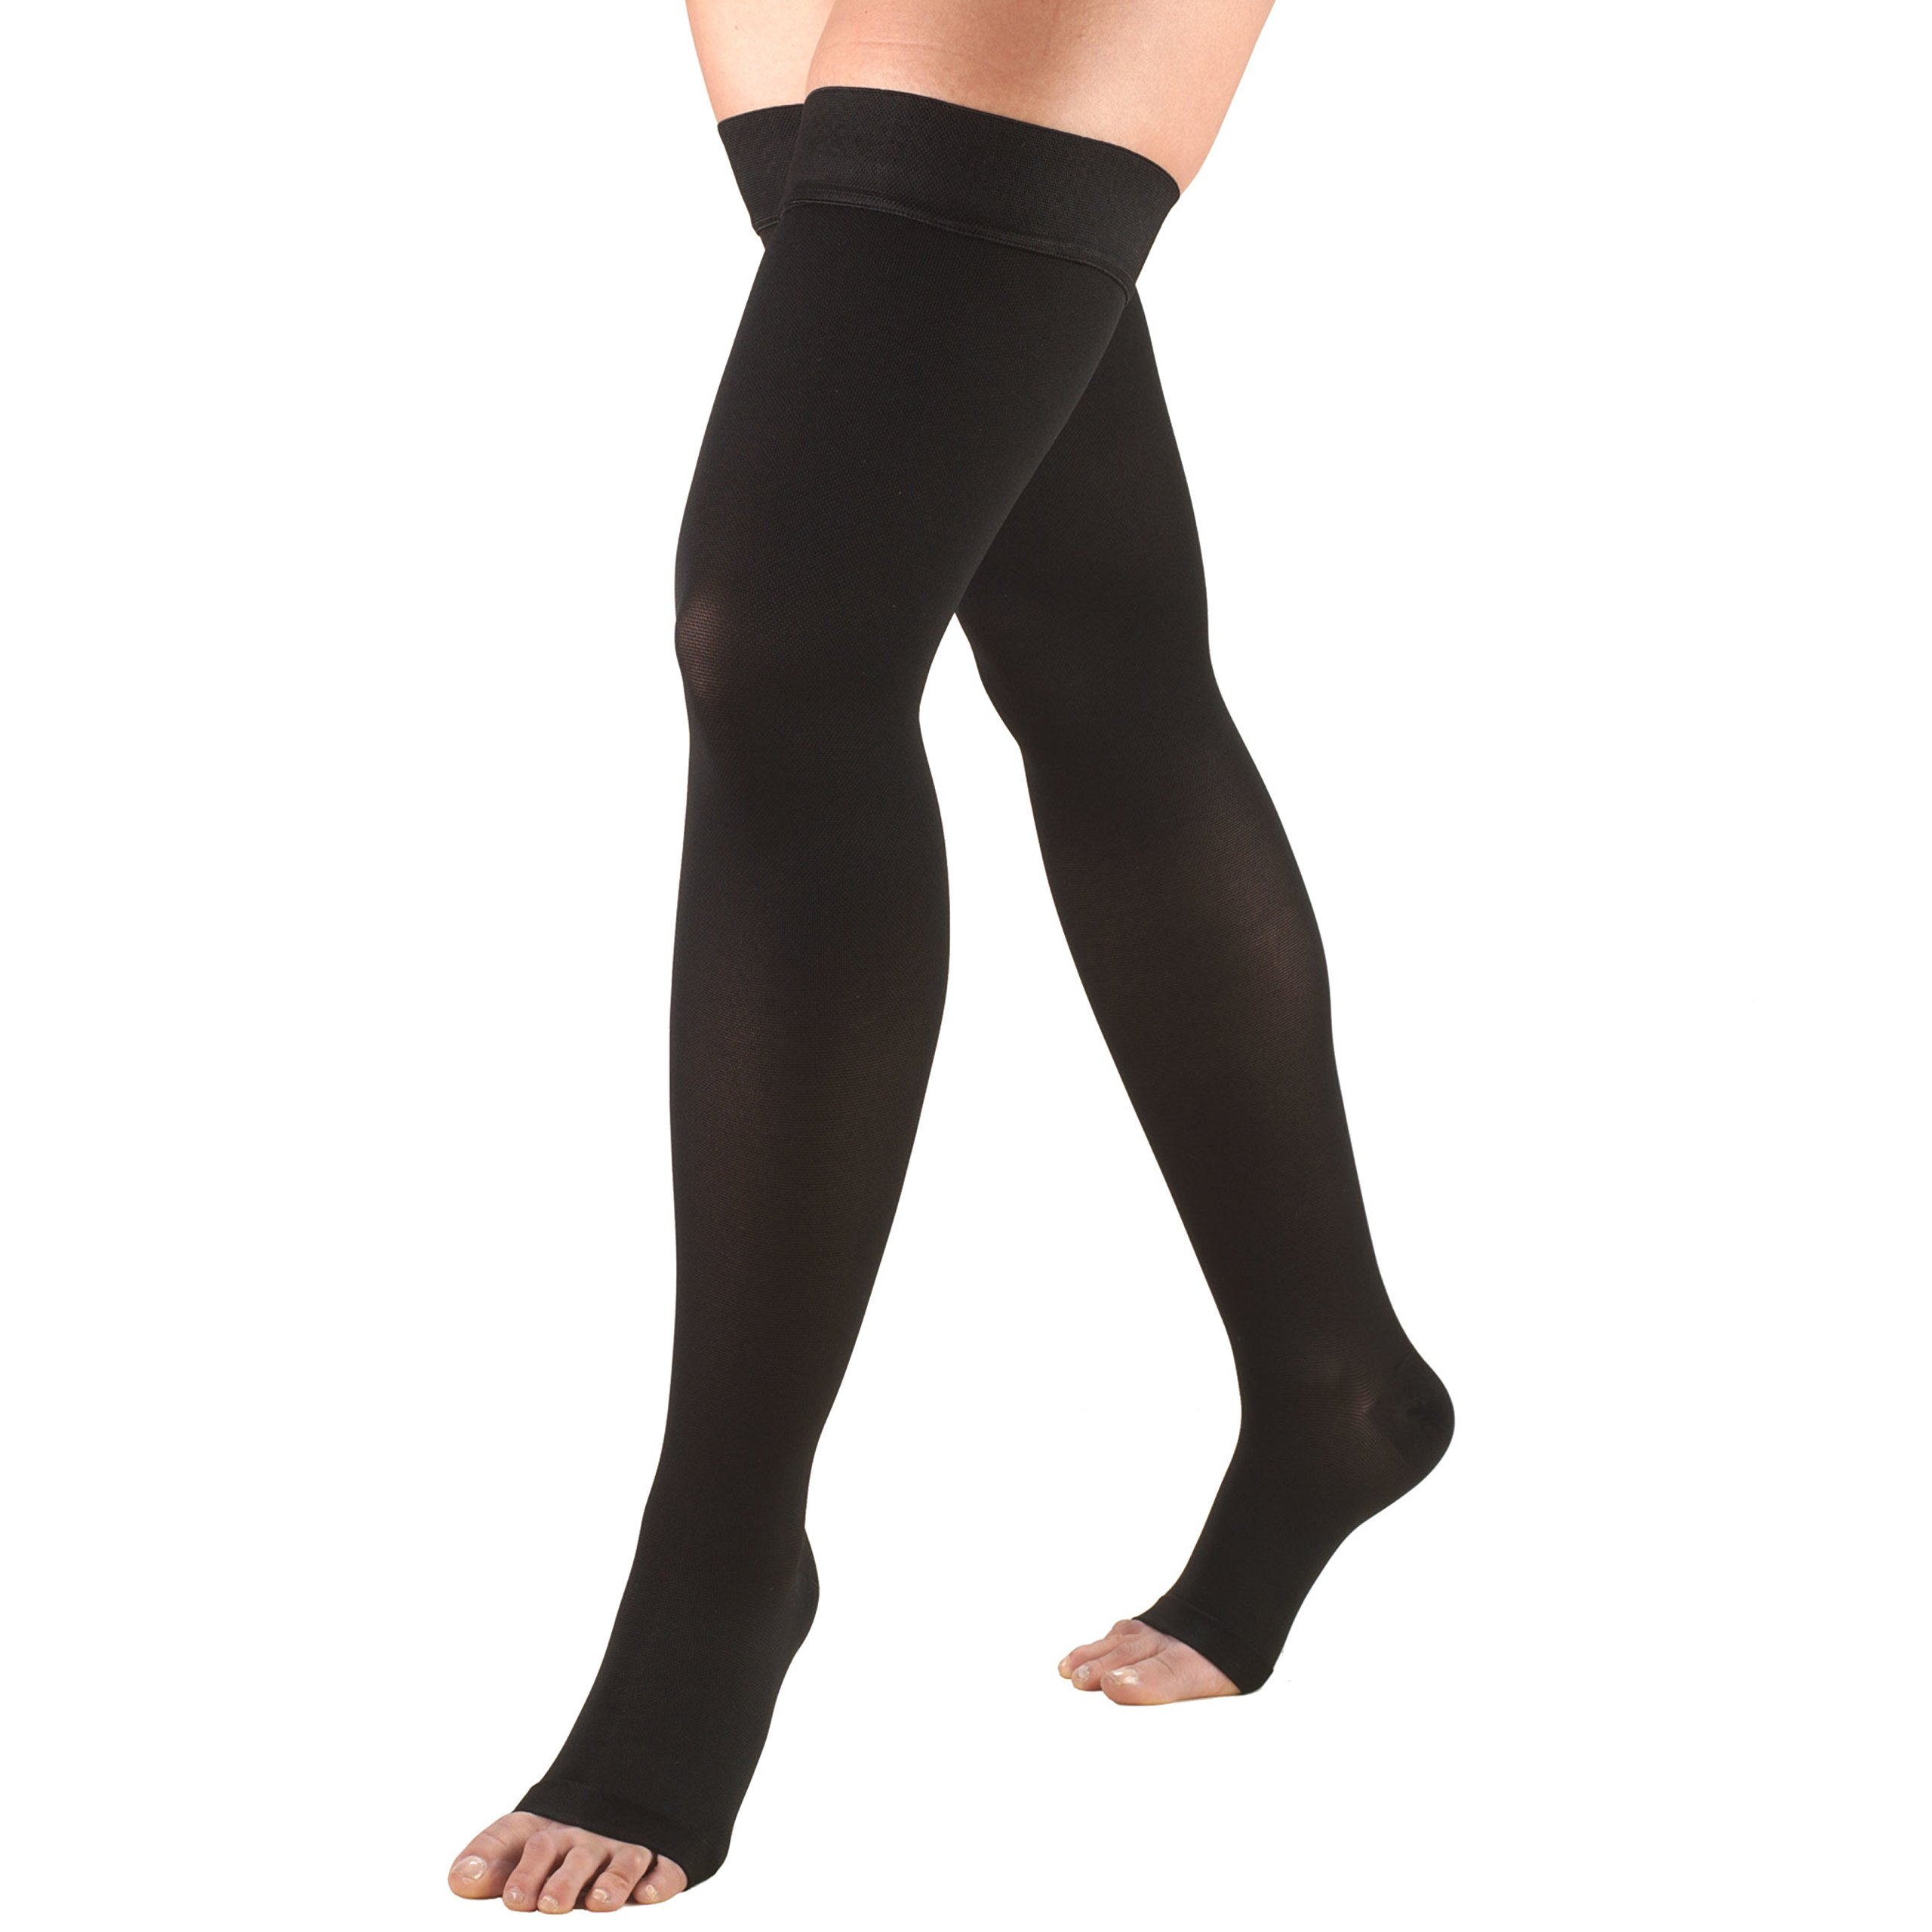 8e75faea97d Amazon.com  20-30 mmHg Compression Stockings for Men and Women ...